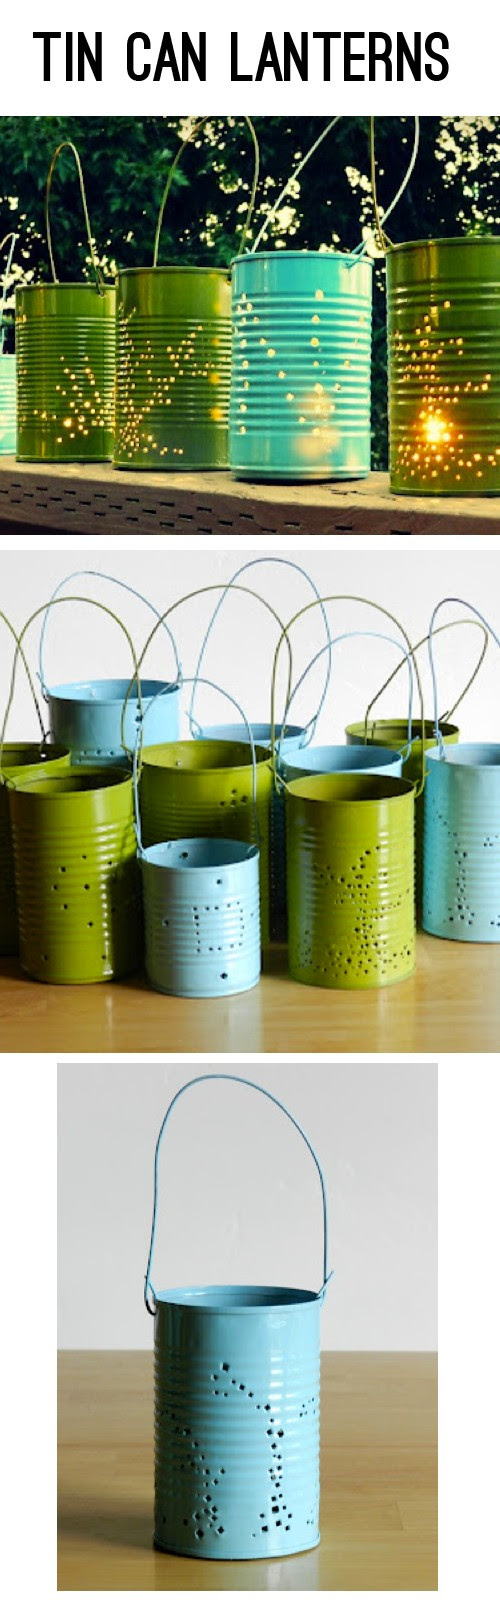 How to make cool DIY recycled tin can lanterns step by step tutorial instructions